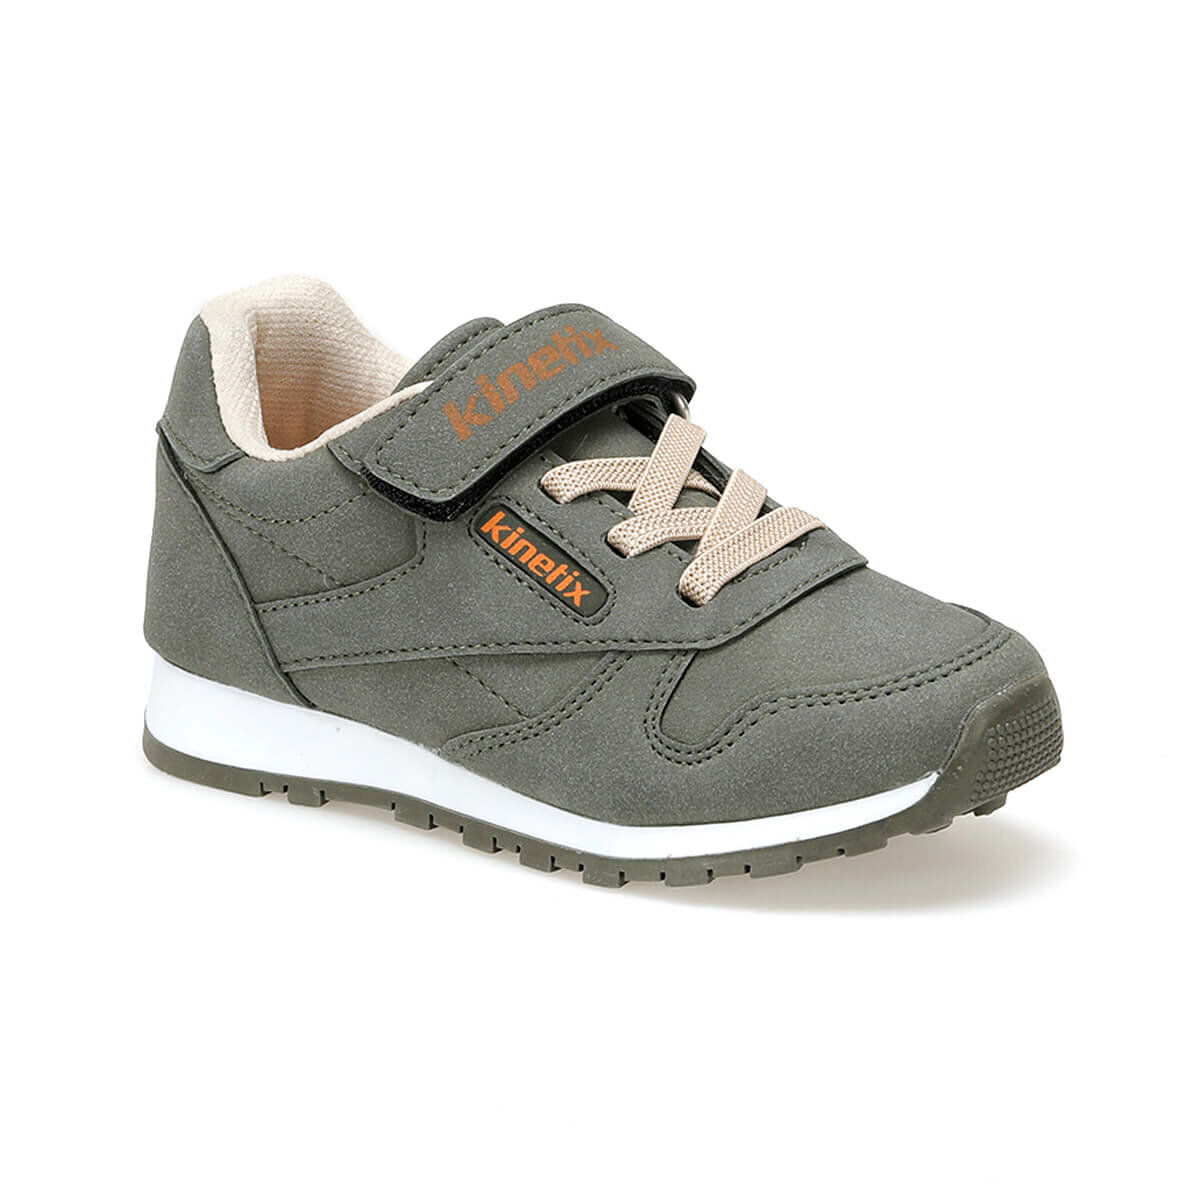 FLO LOWER J 9PR Khaki Male Child Sneaker Shoes KINETIX